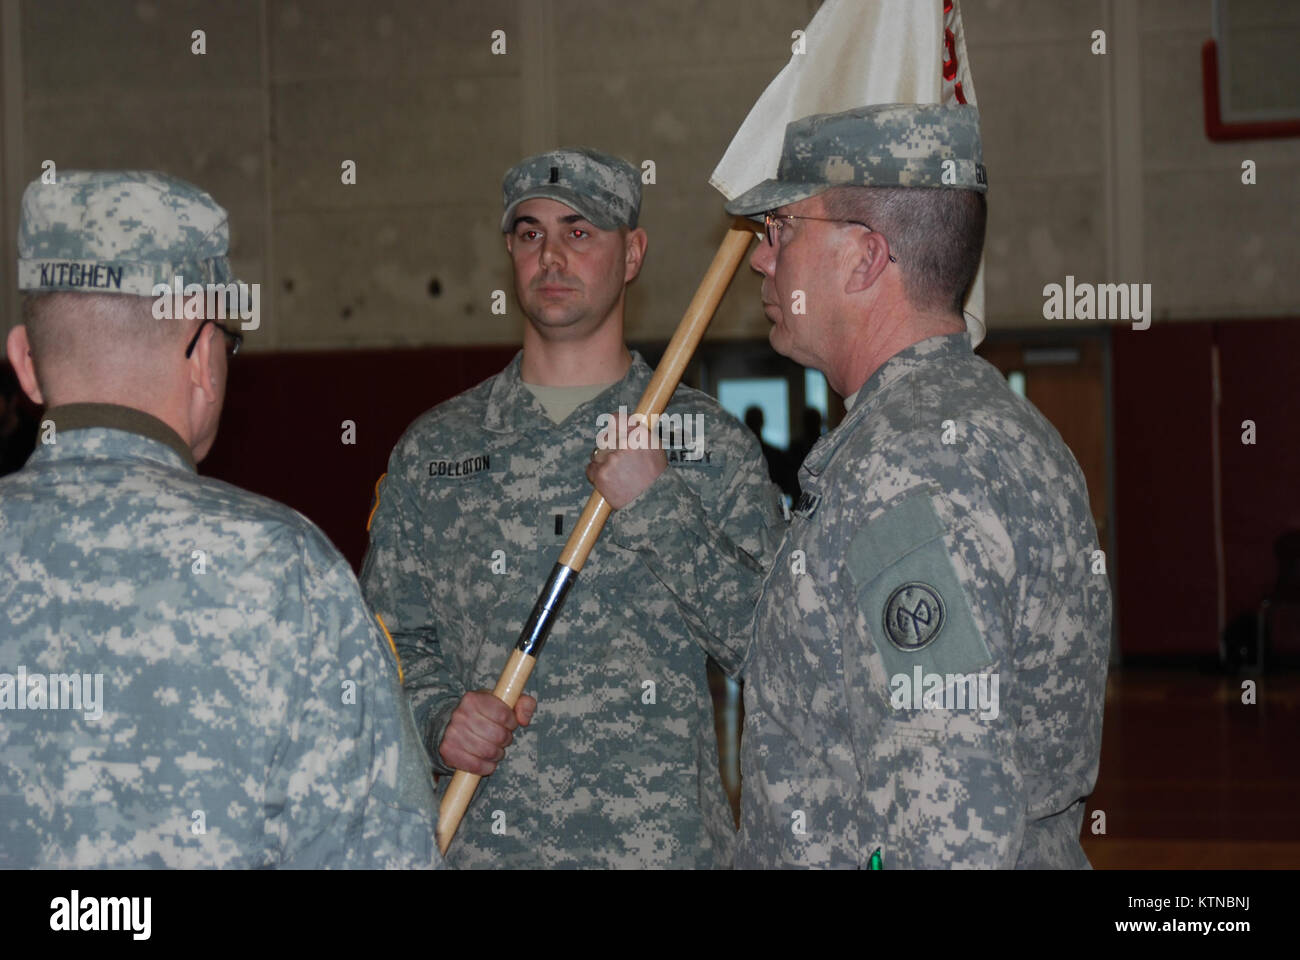 Steven Kitchen Transfers The Guidon Of Company E 427th Brigade Support  Battalion To Lt. Mark Colloton During Change Of Command Ceremonies On  Sunday, Jan.